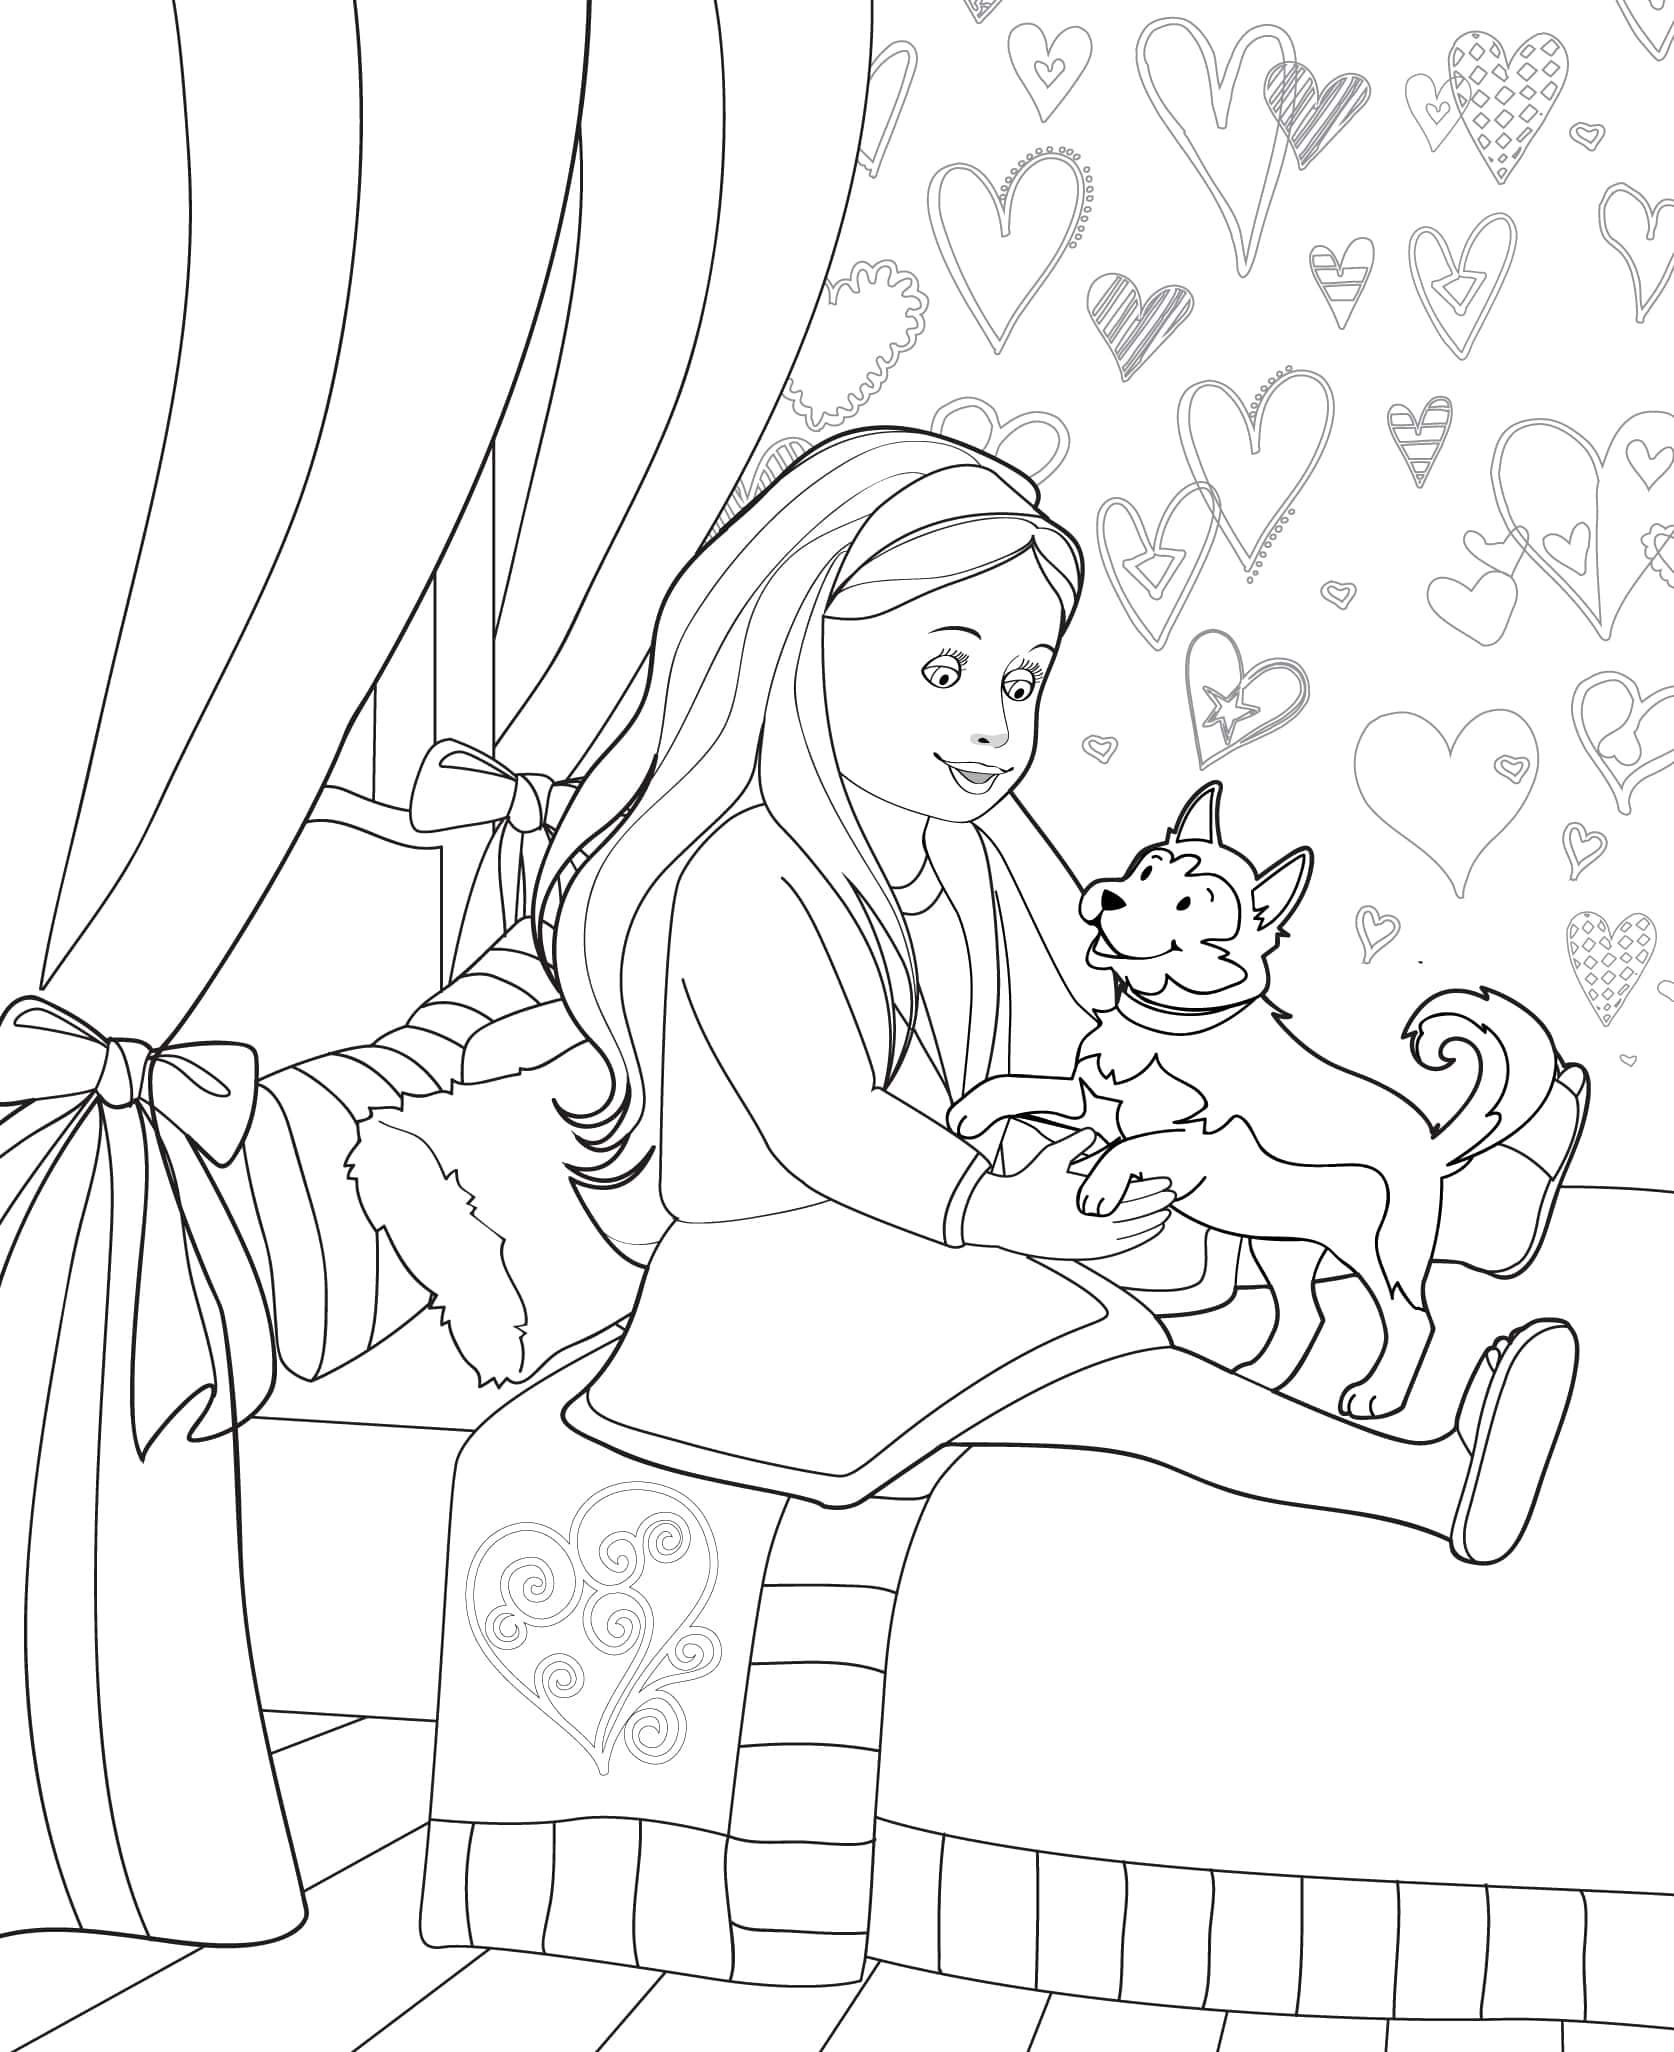 Doll Coloring Books Our Generation Coloring Books Coloring Pages Our Generation Dolls